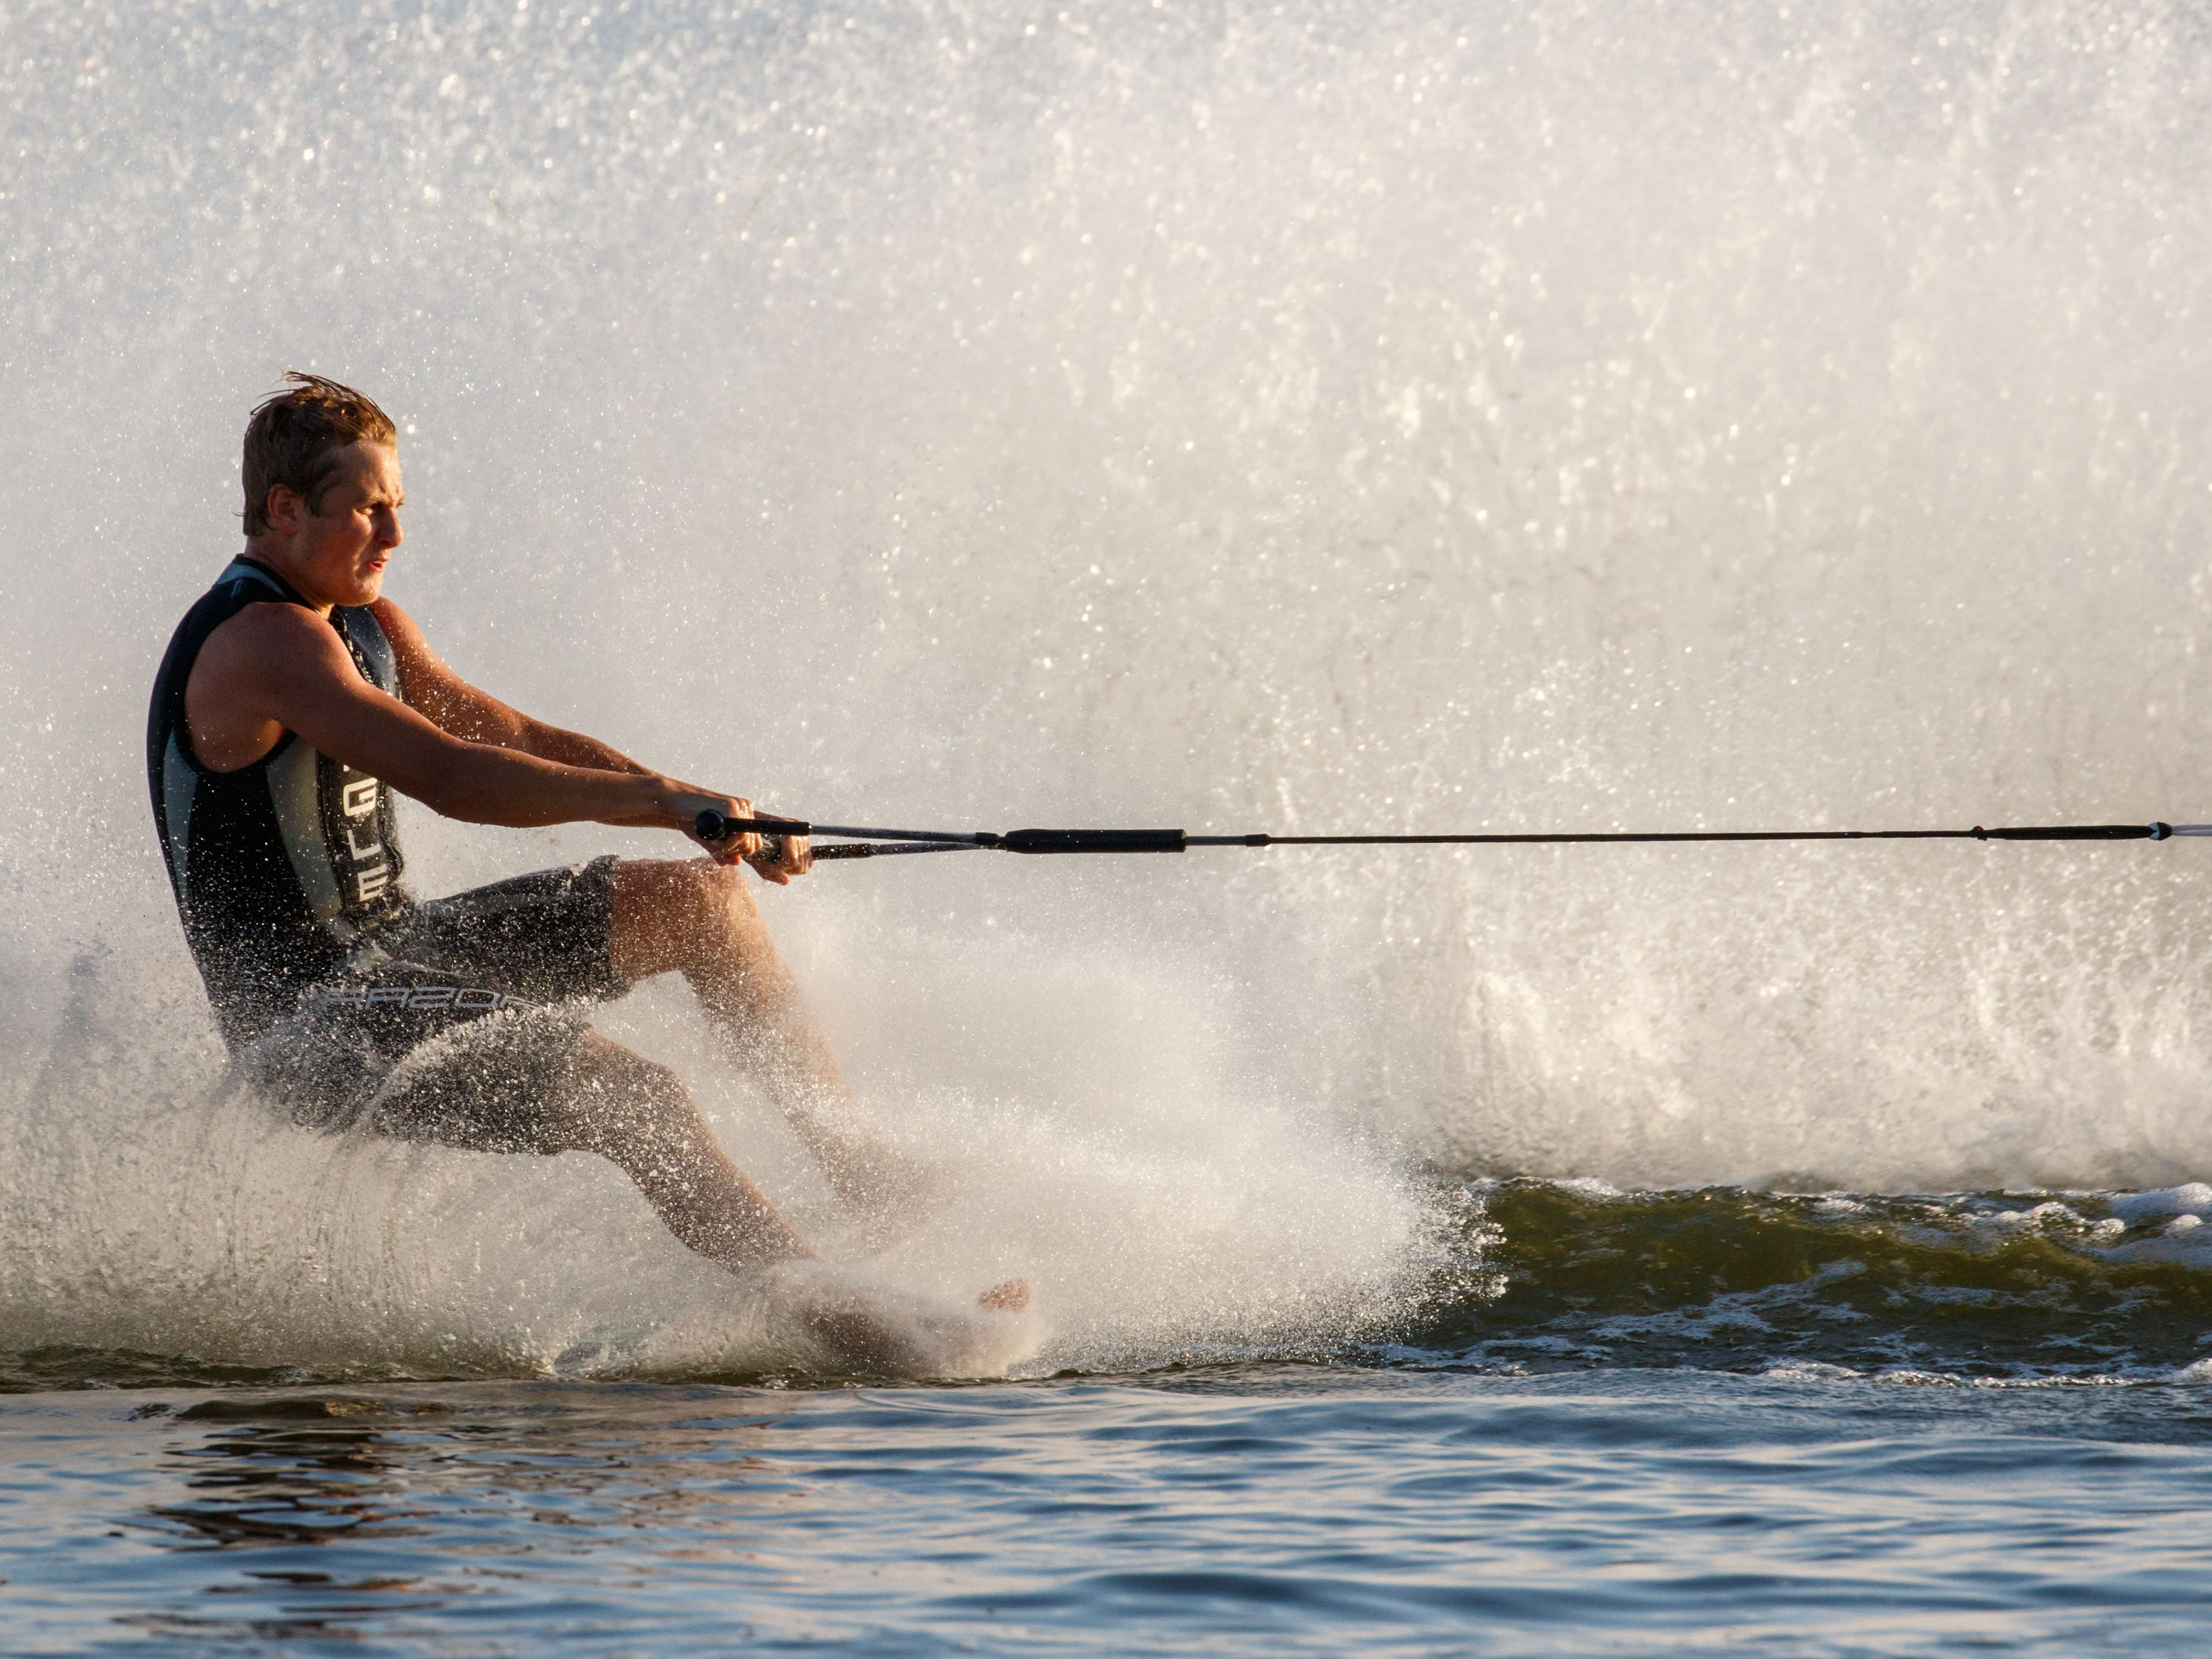 Barefoot skier Nick Kasic of West Bend speeds past during the Pewaukee Lake Water Ski Club's weekly show at Lakefront Park on Thursday, August 2, 2018.